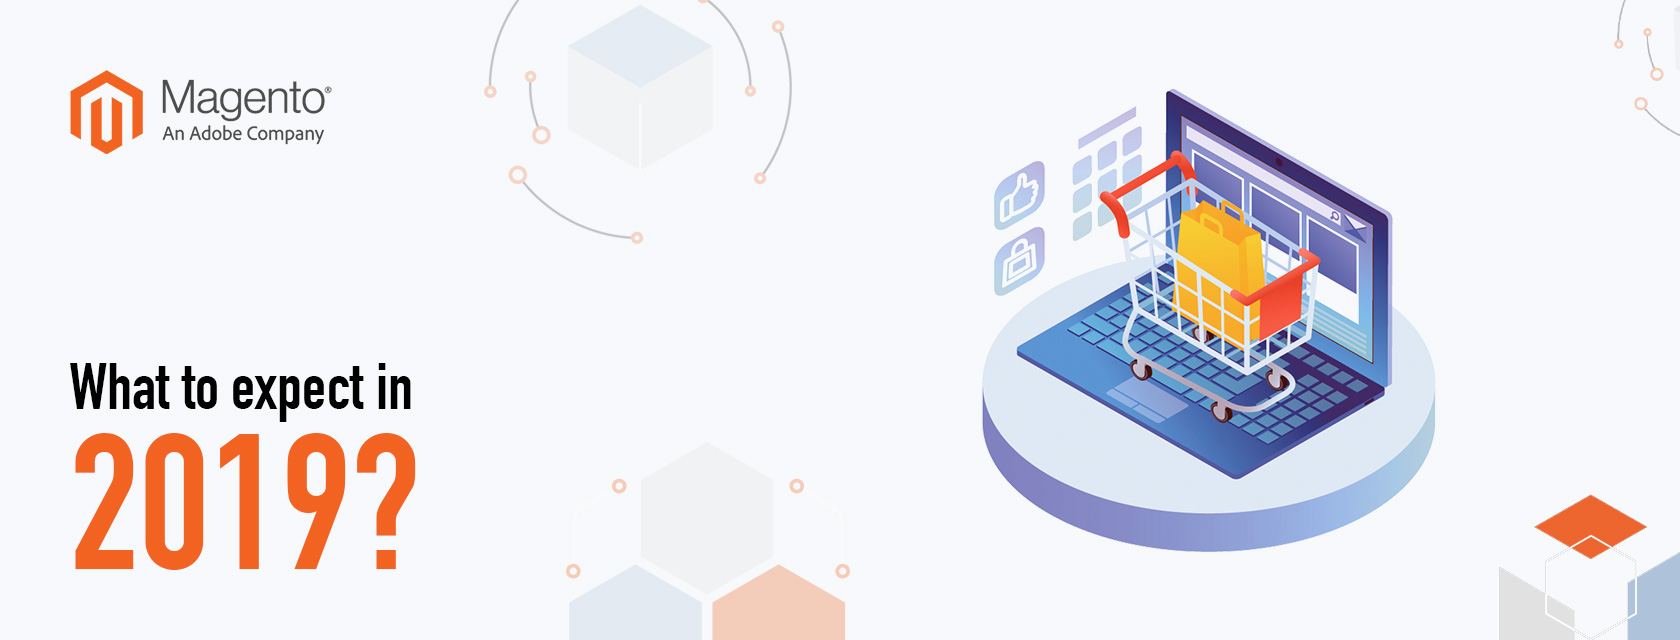 Magento Trends 2019 – What to expect from Magento this year?